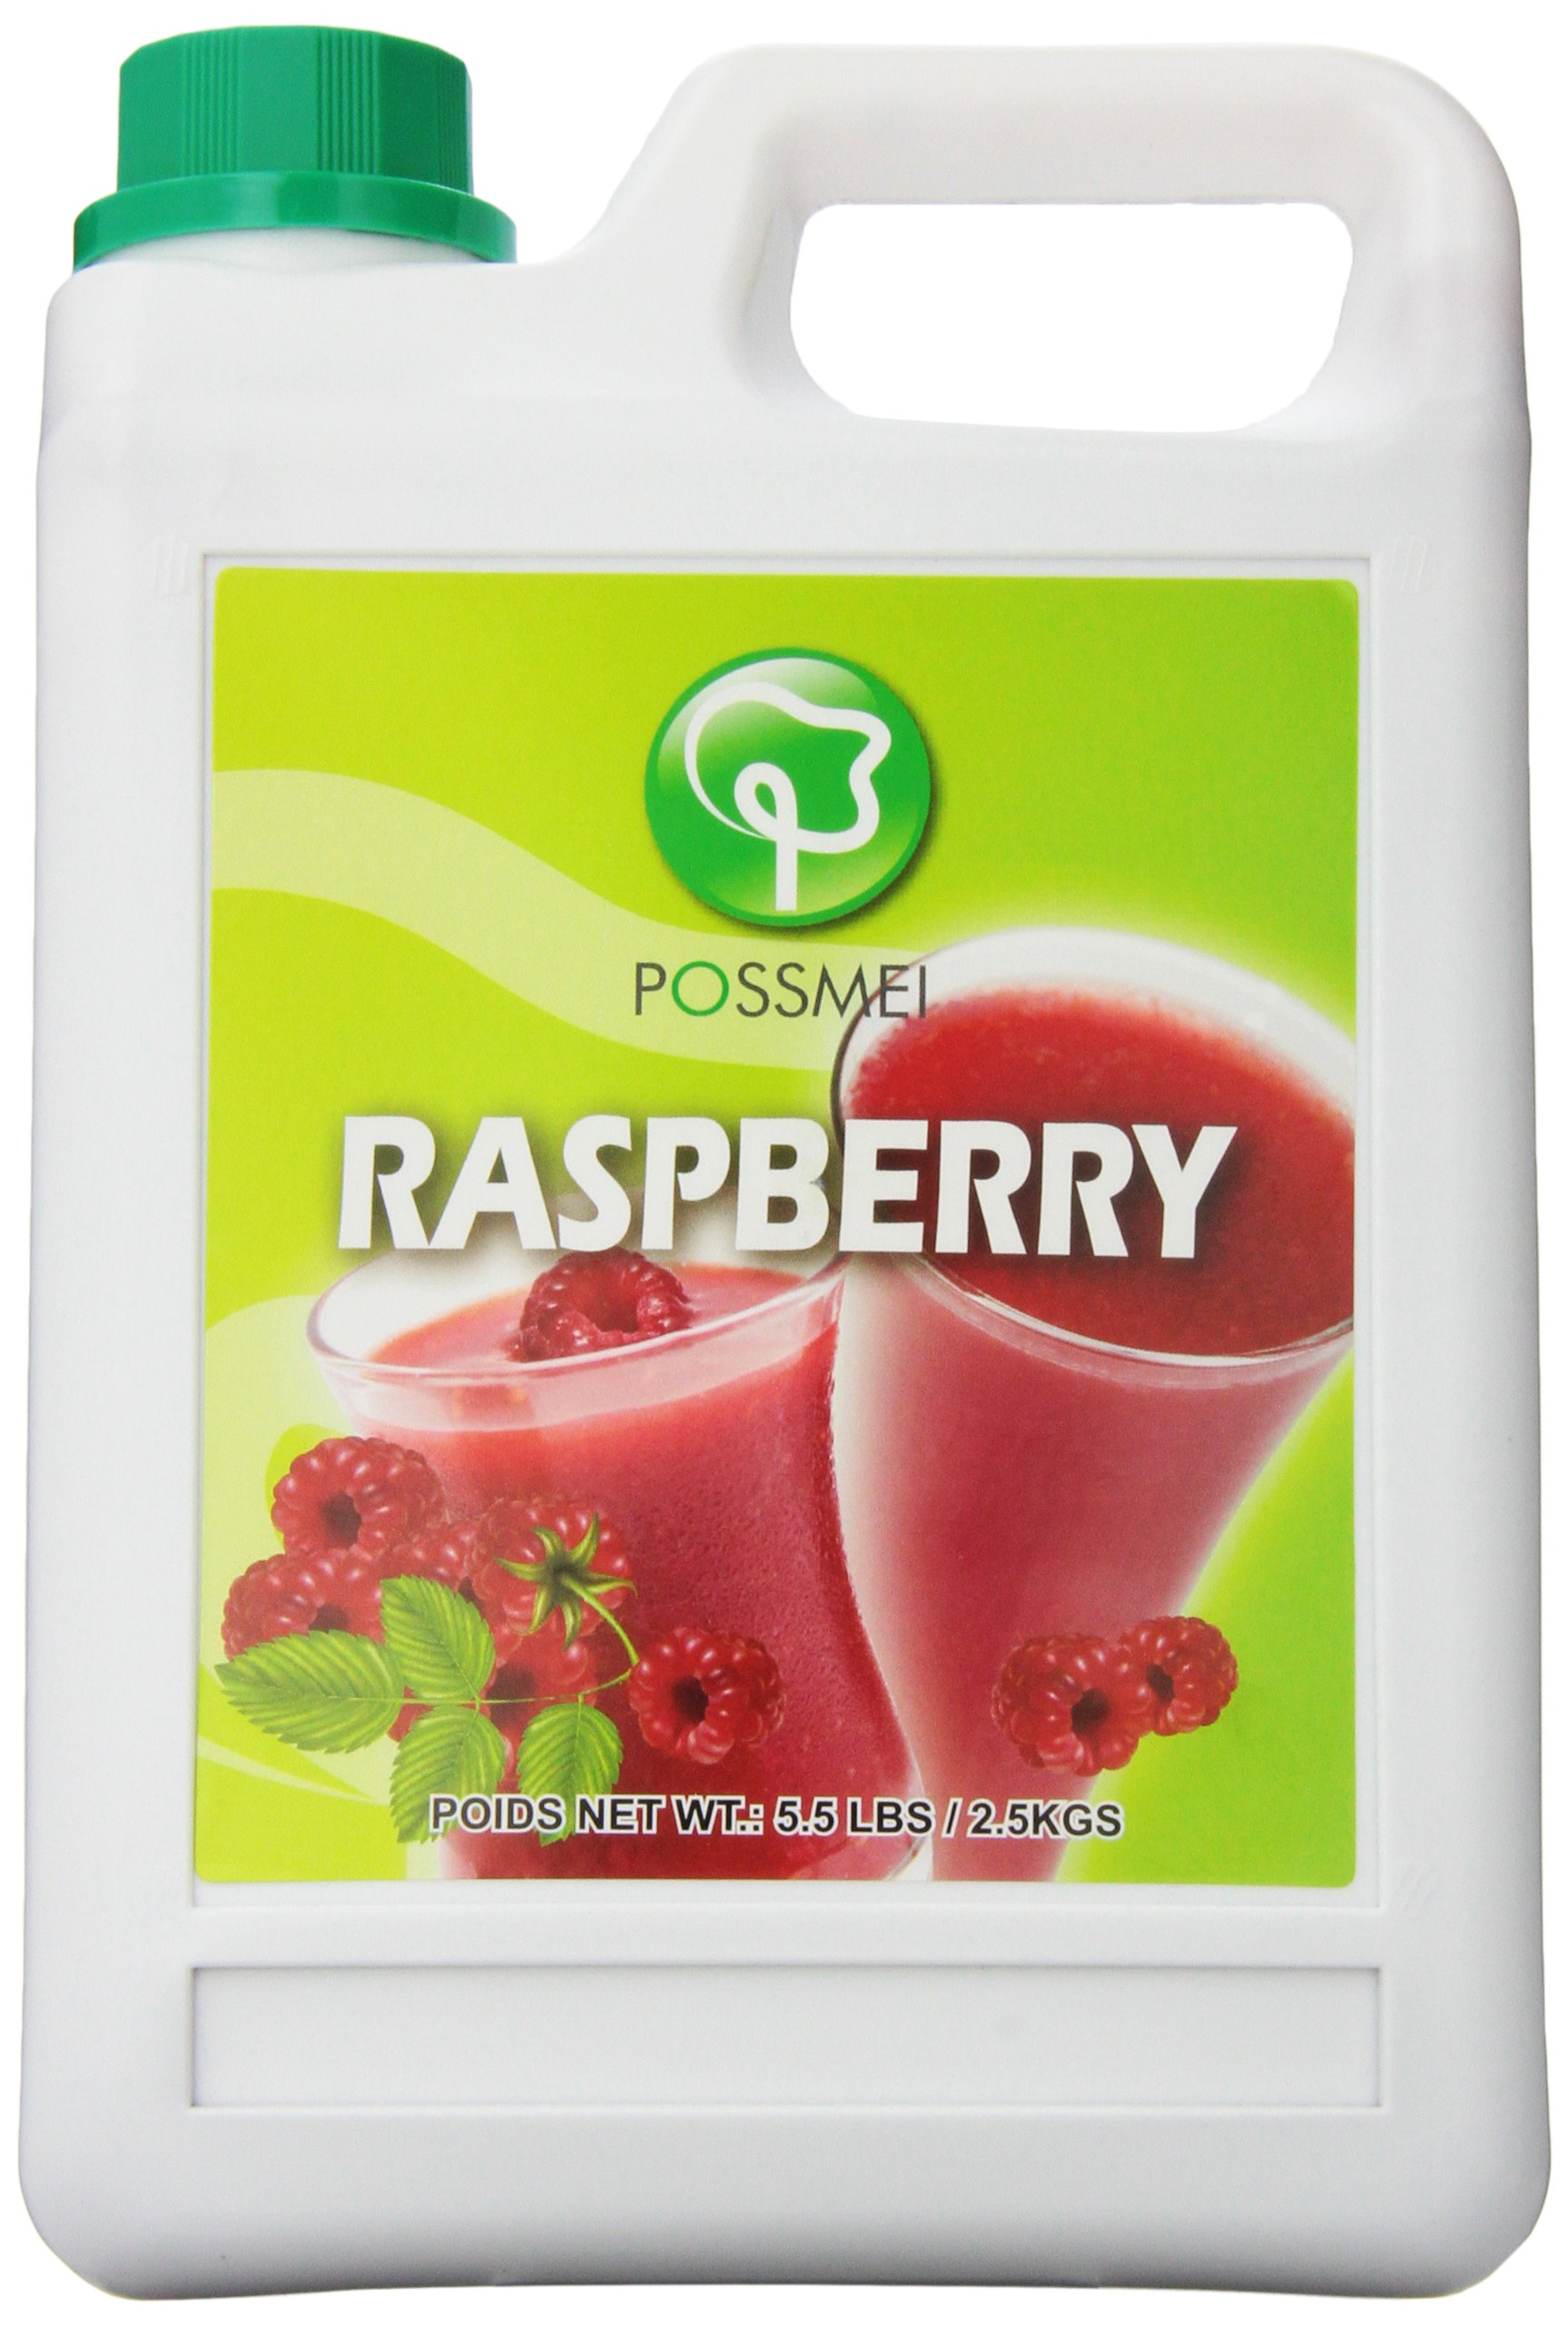 Possmei Flavored Syrup,  Raspberry, 5.5 Pound